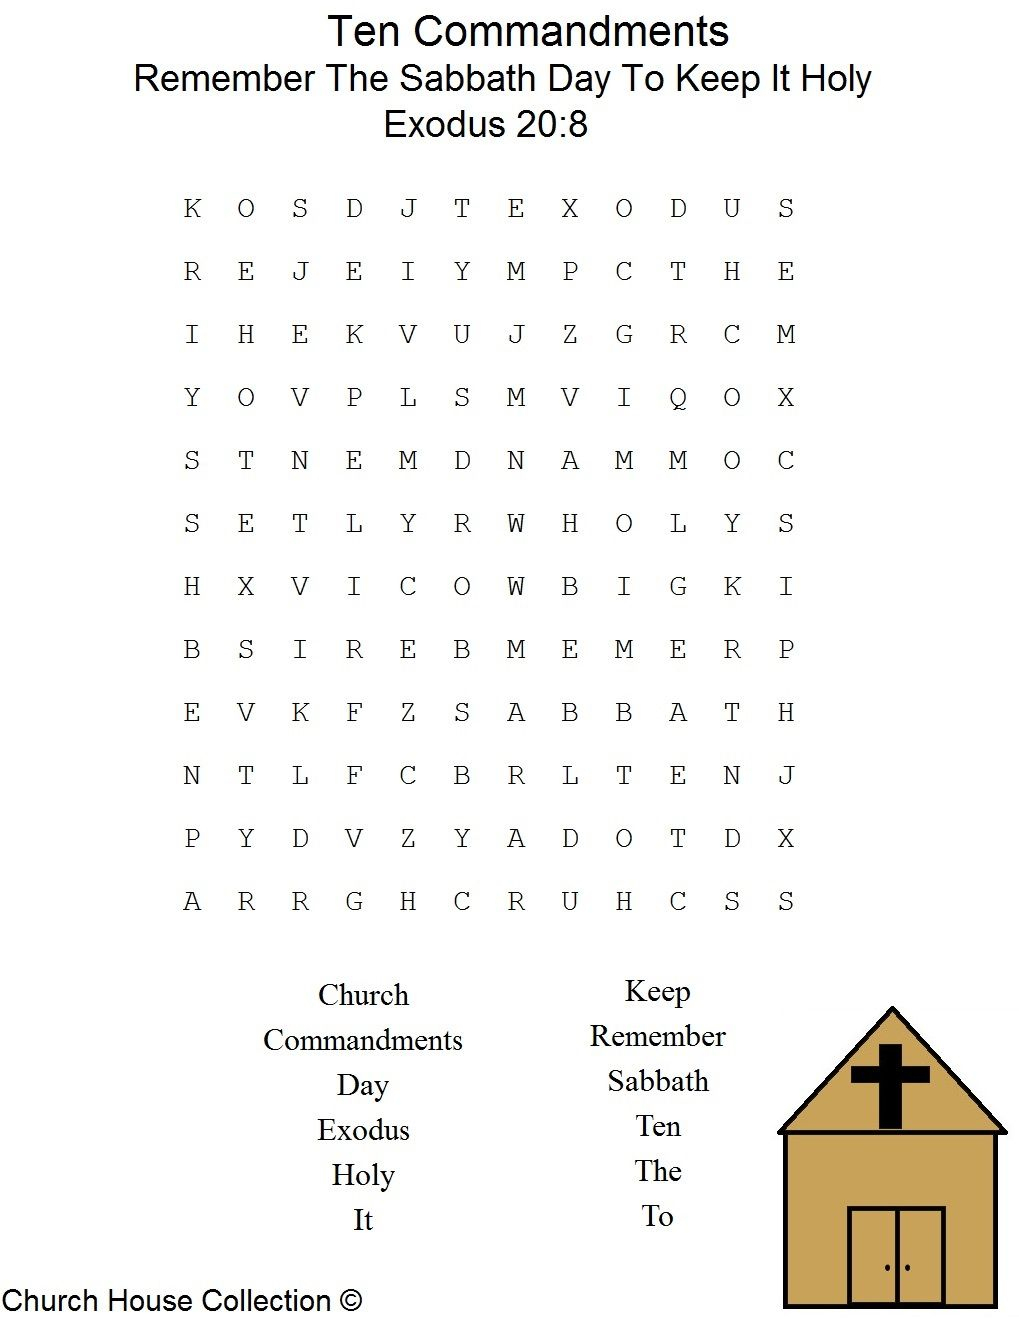 This Is A Free Printable Ten Commandments Word Find Puzzle For The - Free Printable Catholic Word Search